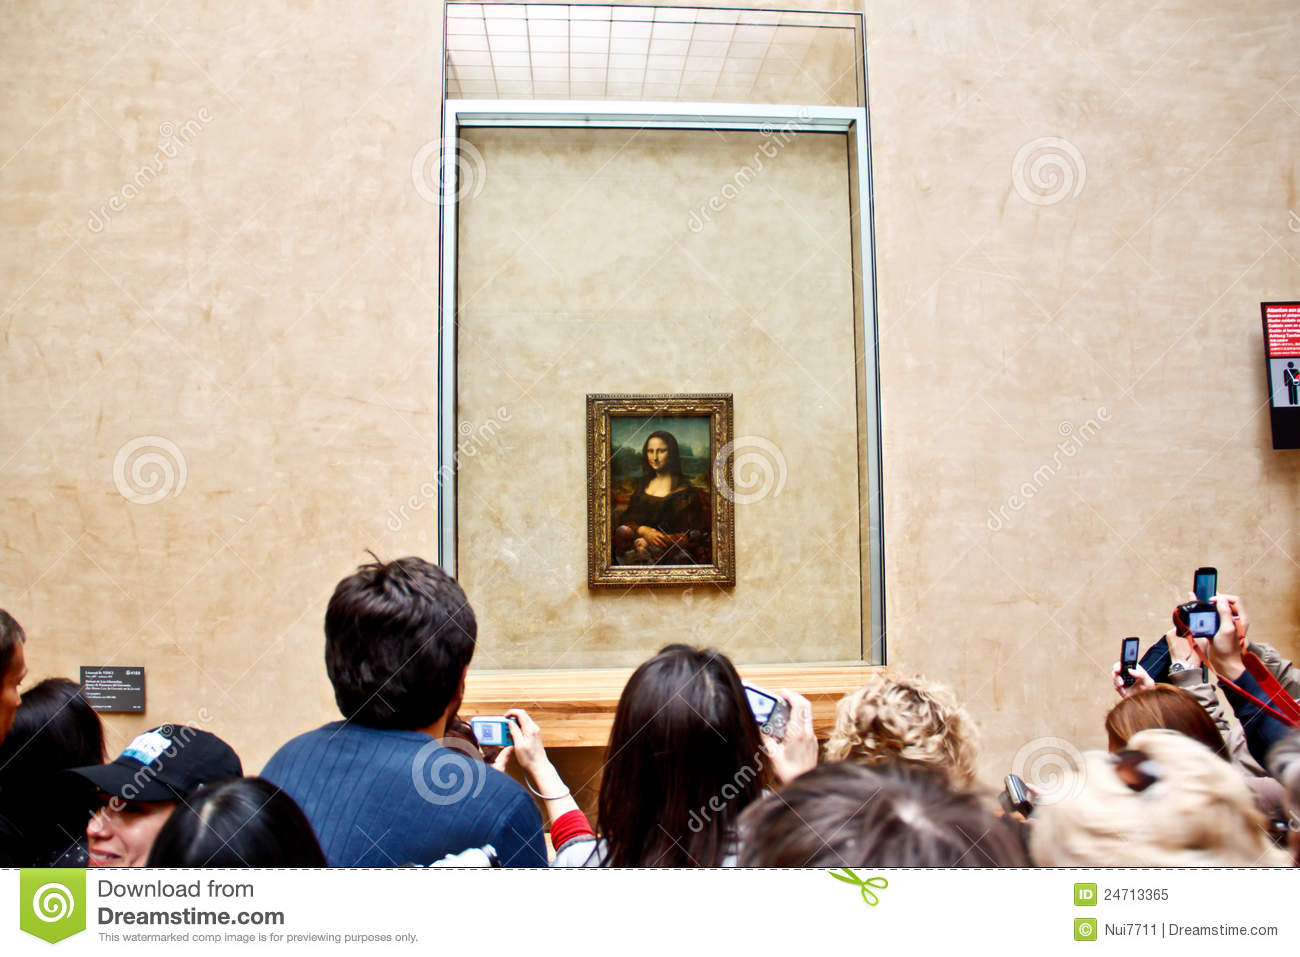 The famous painting Monalisa 2